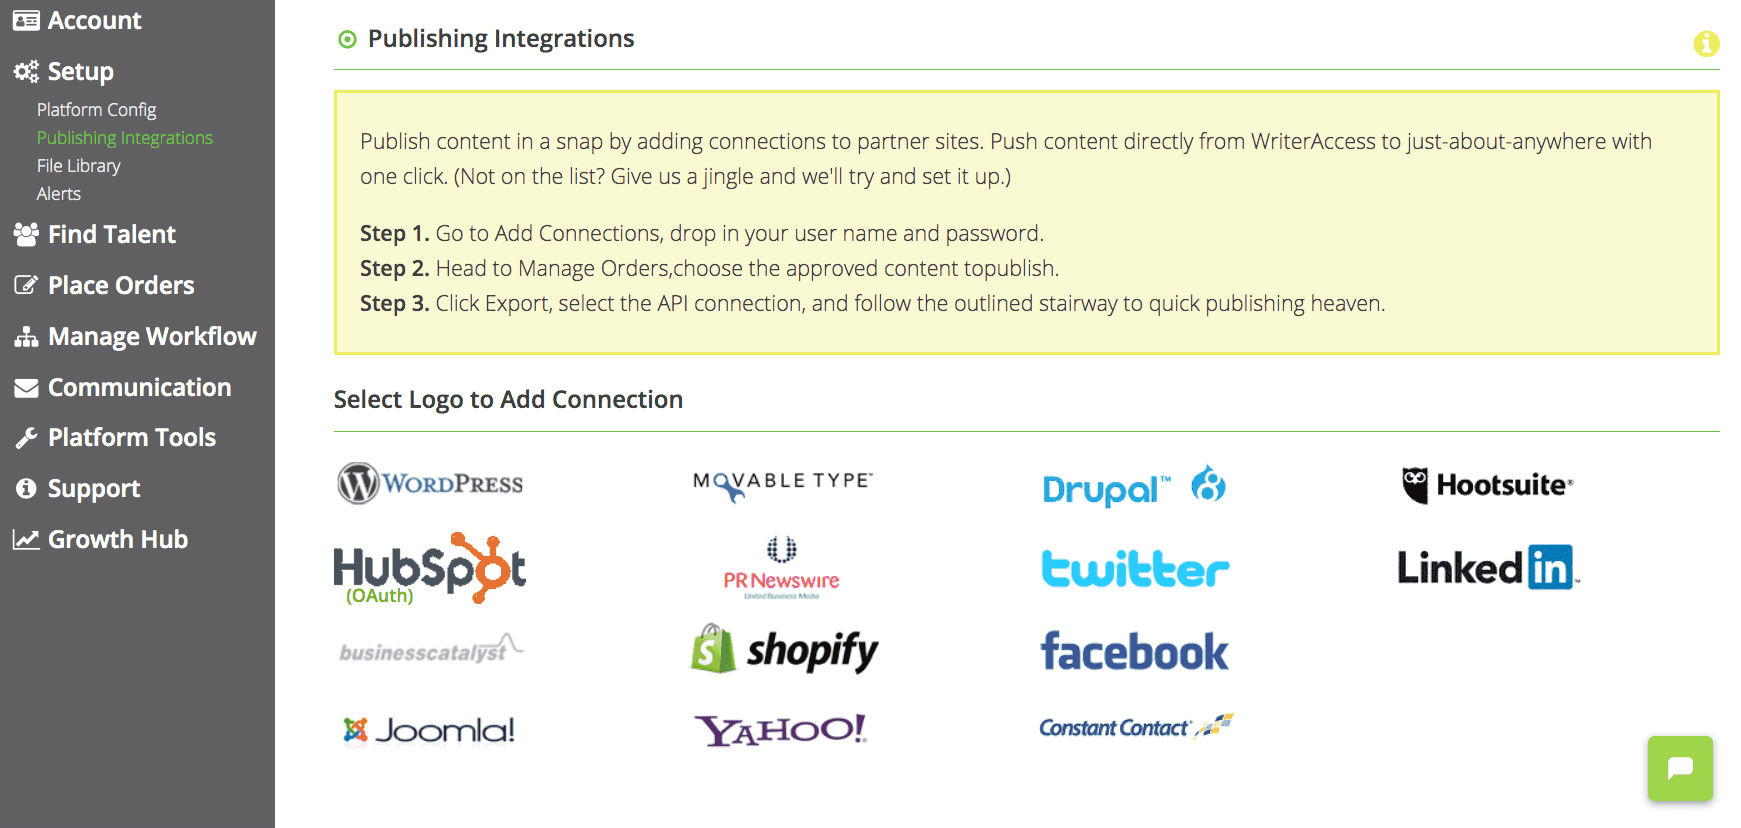 WriterAccess publishing integrations